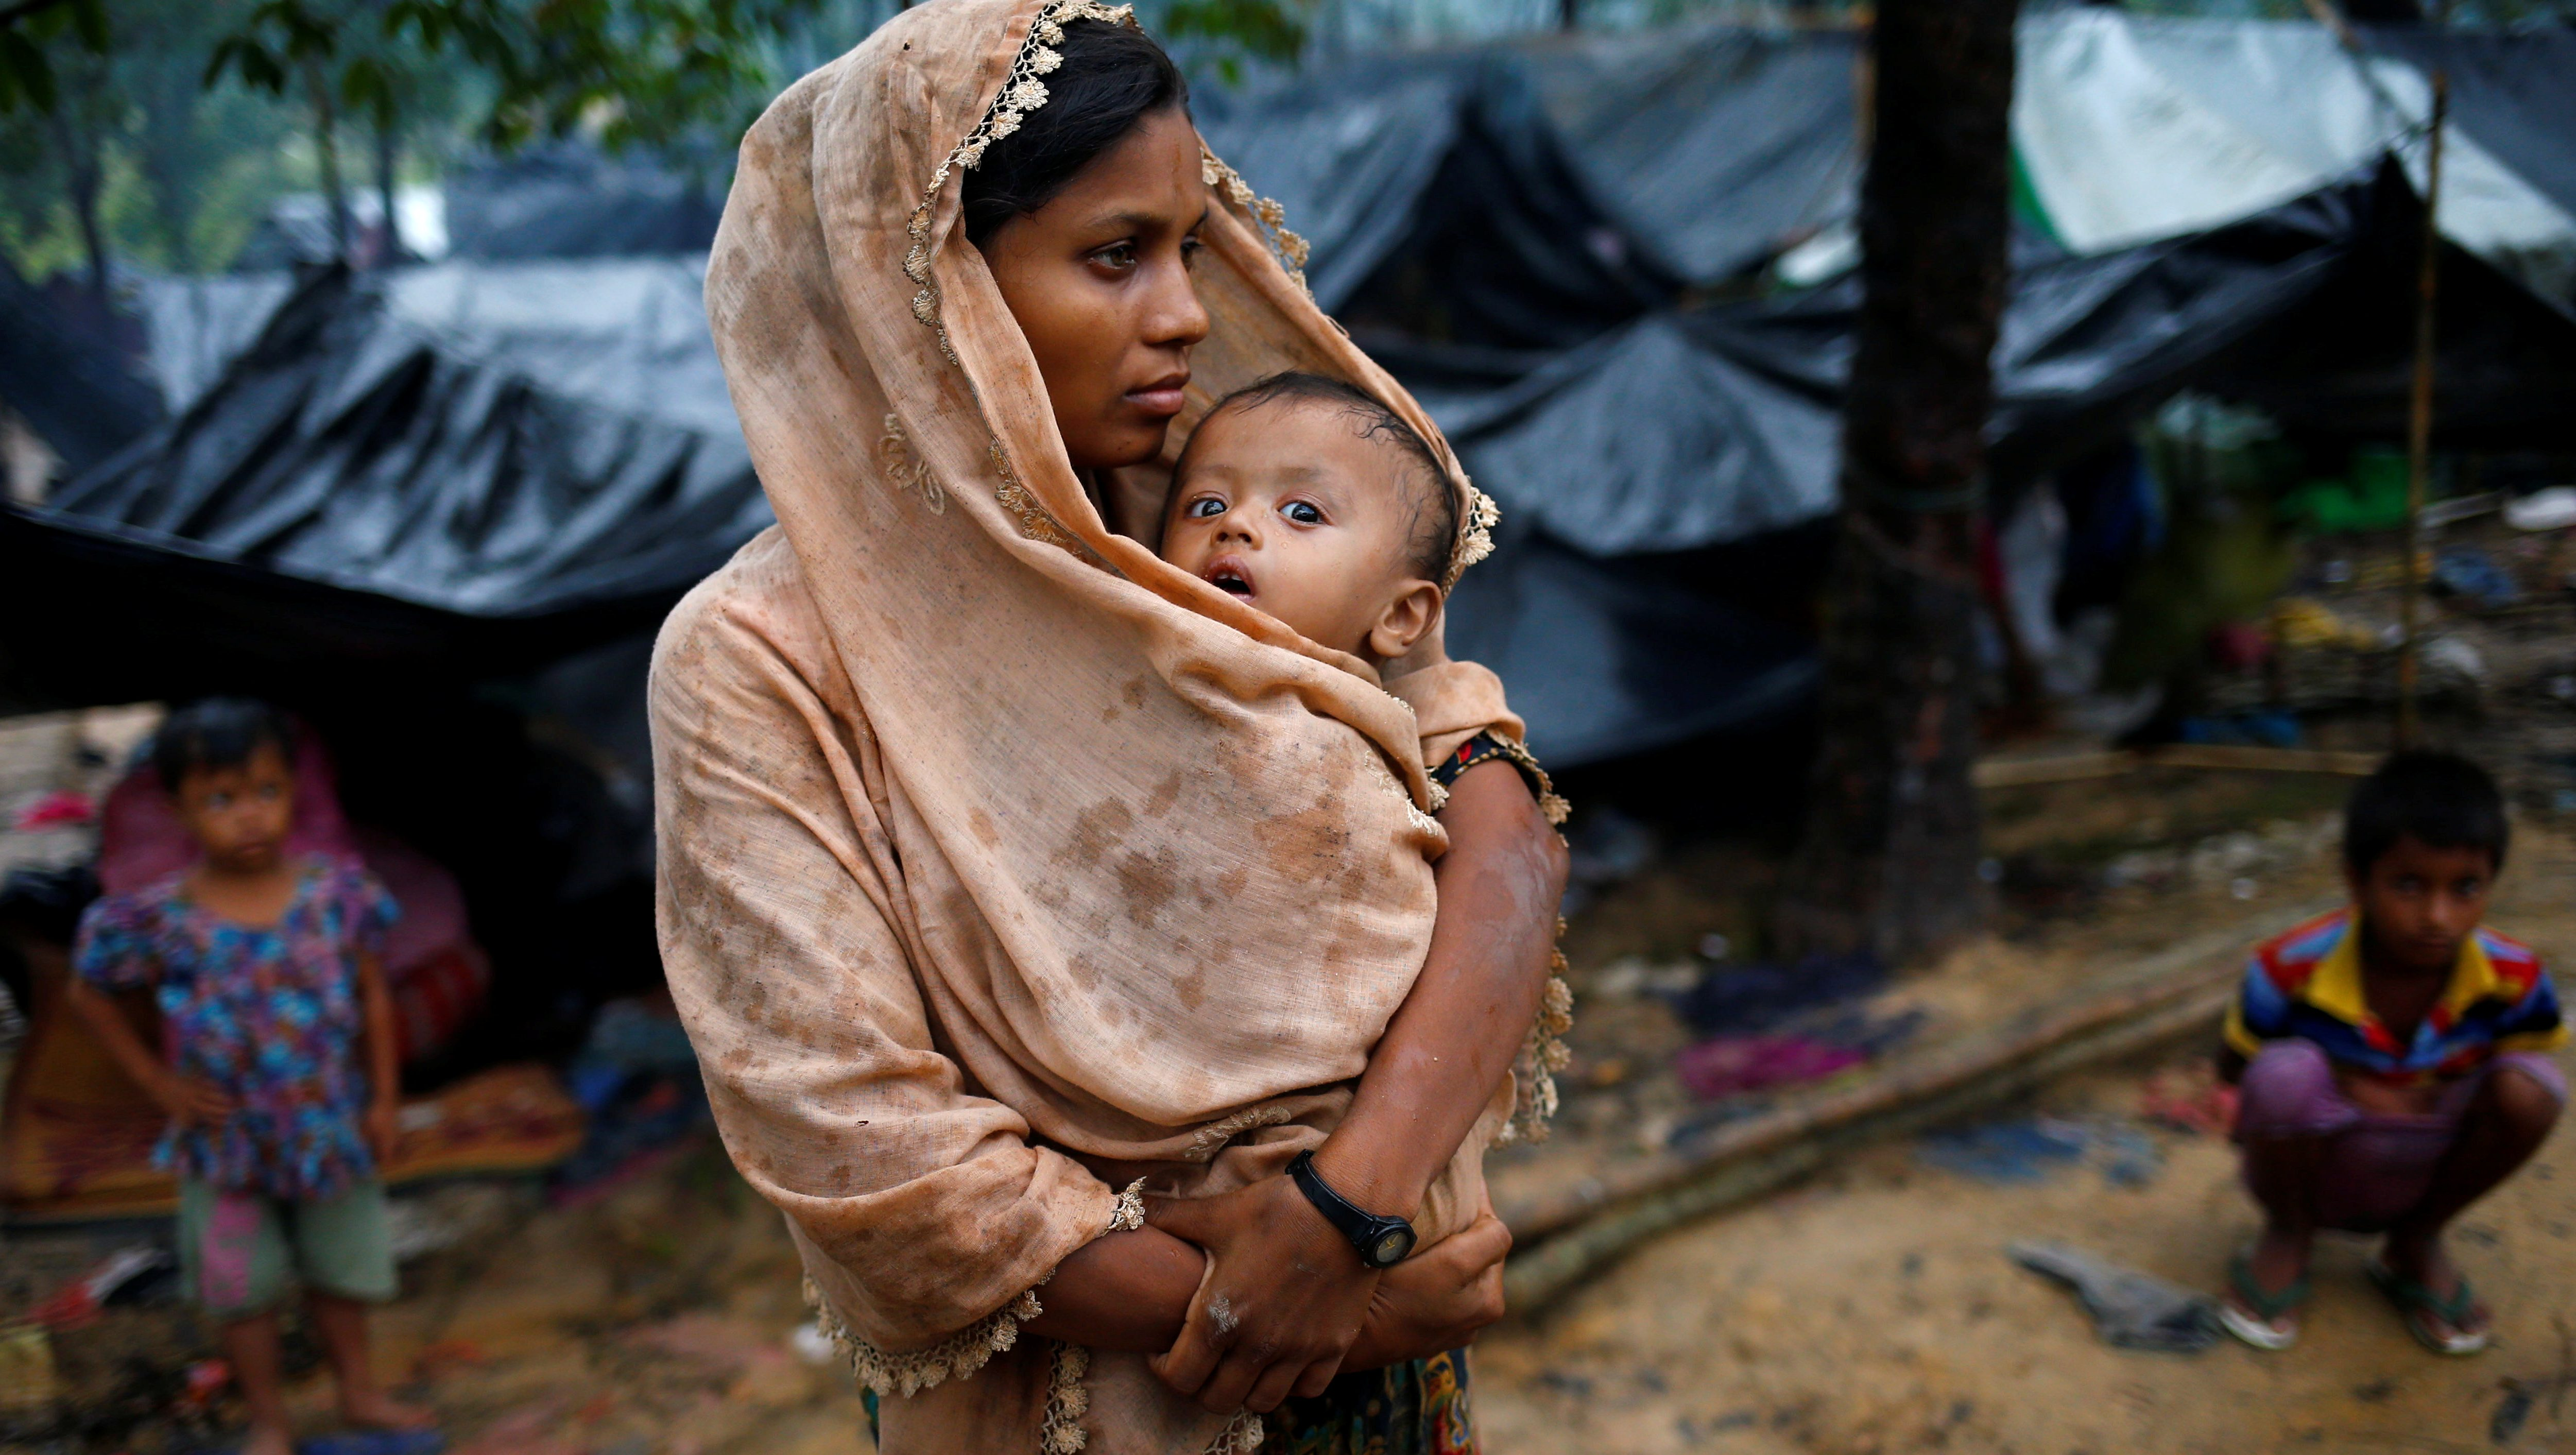 A Rohingya refugee woman wraps her child with a scarf as it drizzles in Cox's Bazar, Bangladesh, September 17, 2017.